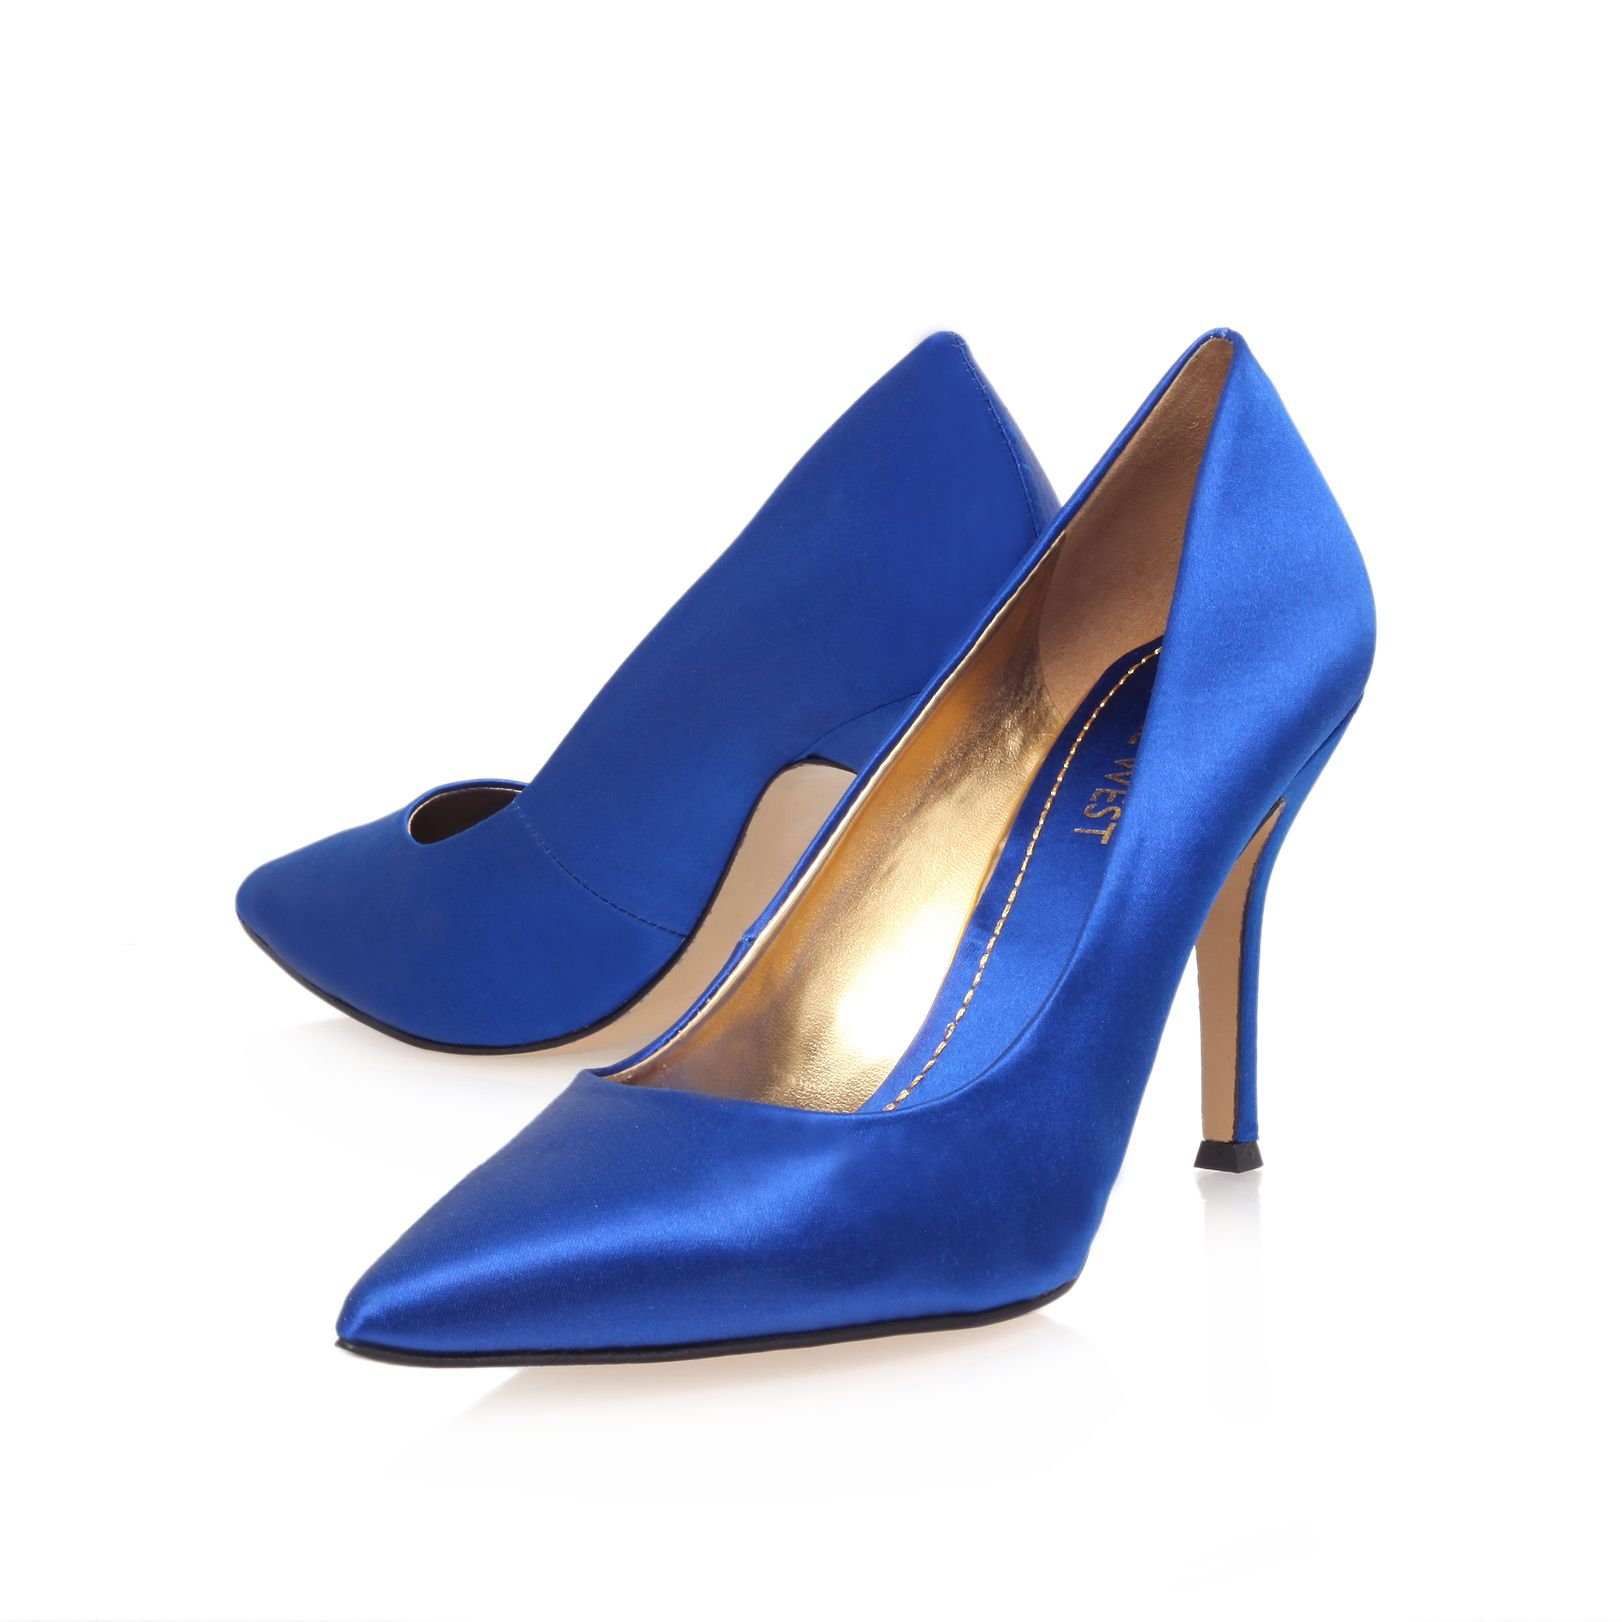 Flax22 high heel court shoes